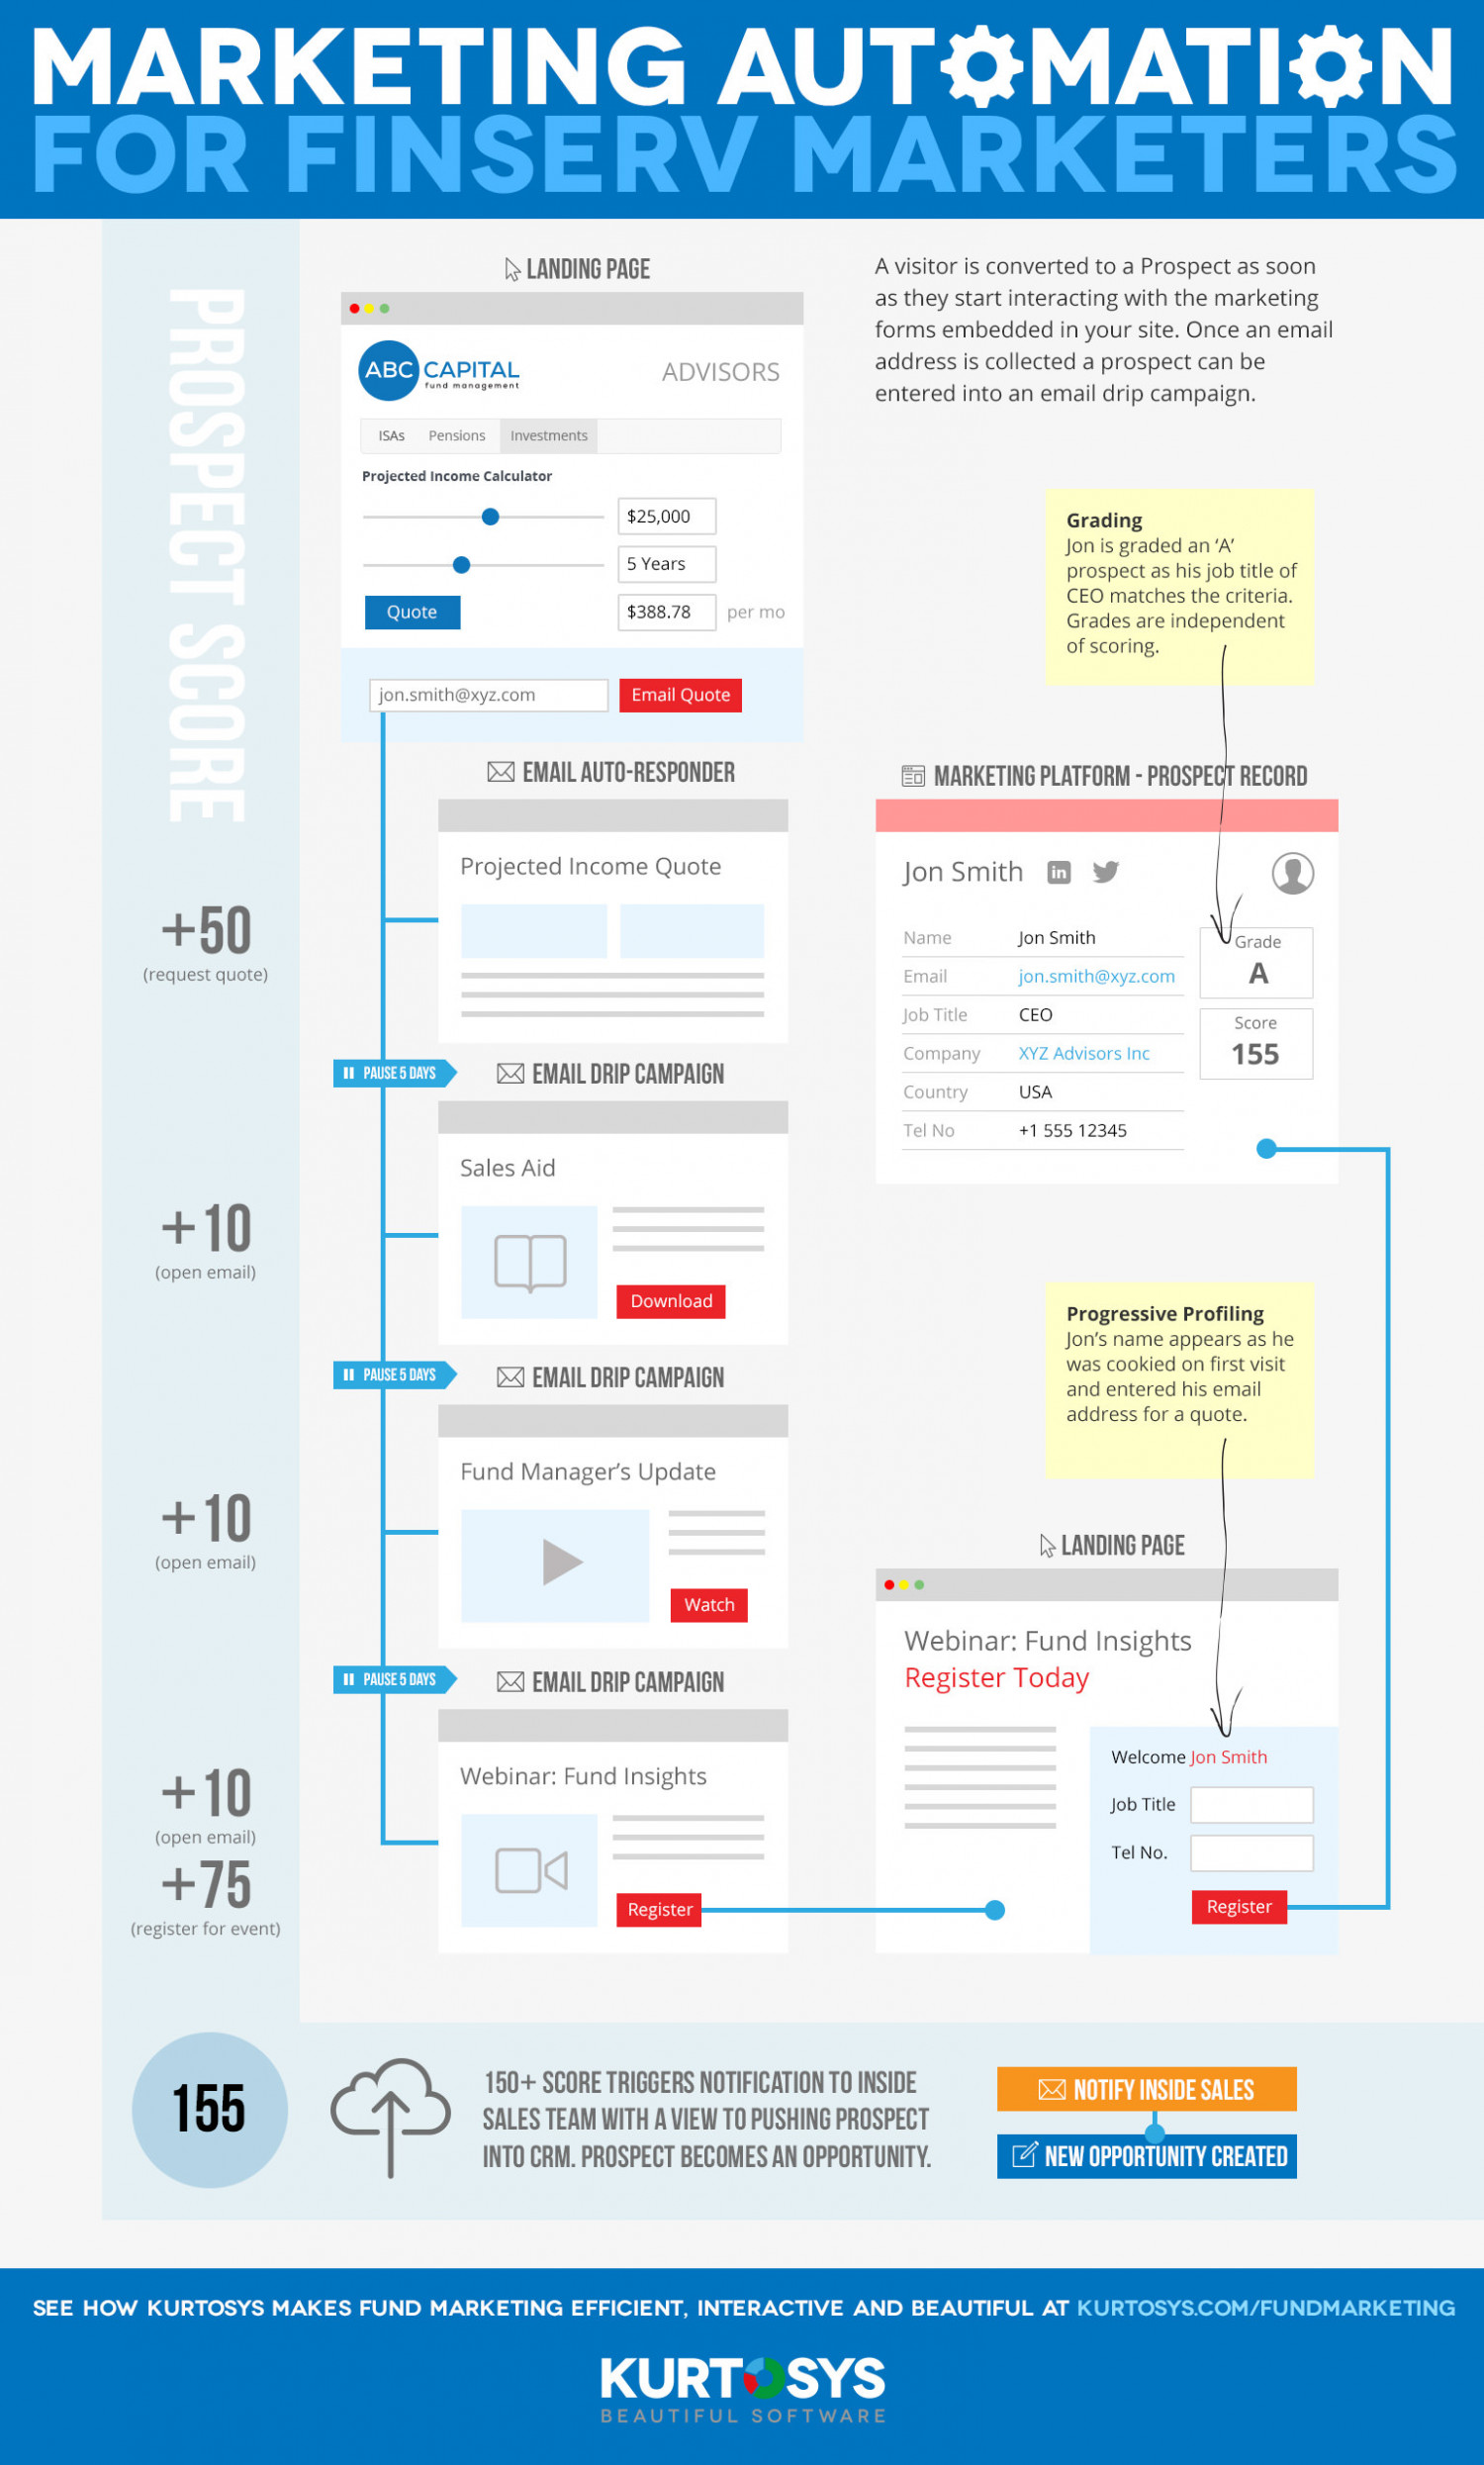 The Big Picture: Marketing Automation for FinServ Marketers Infographic